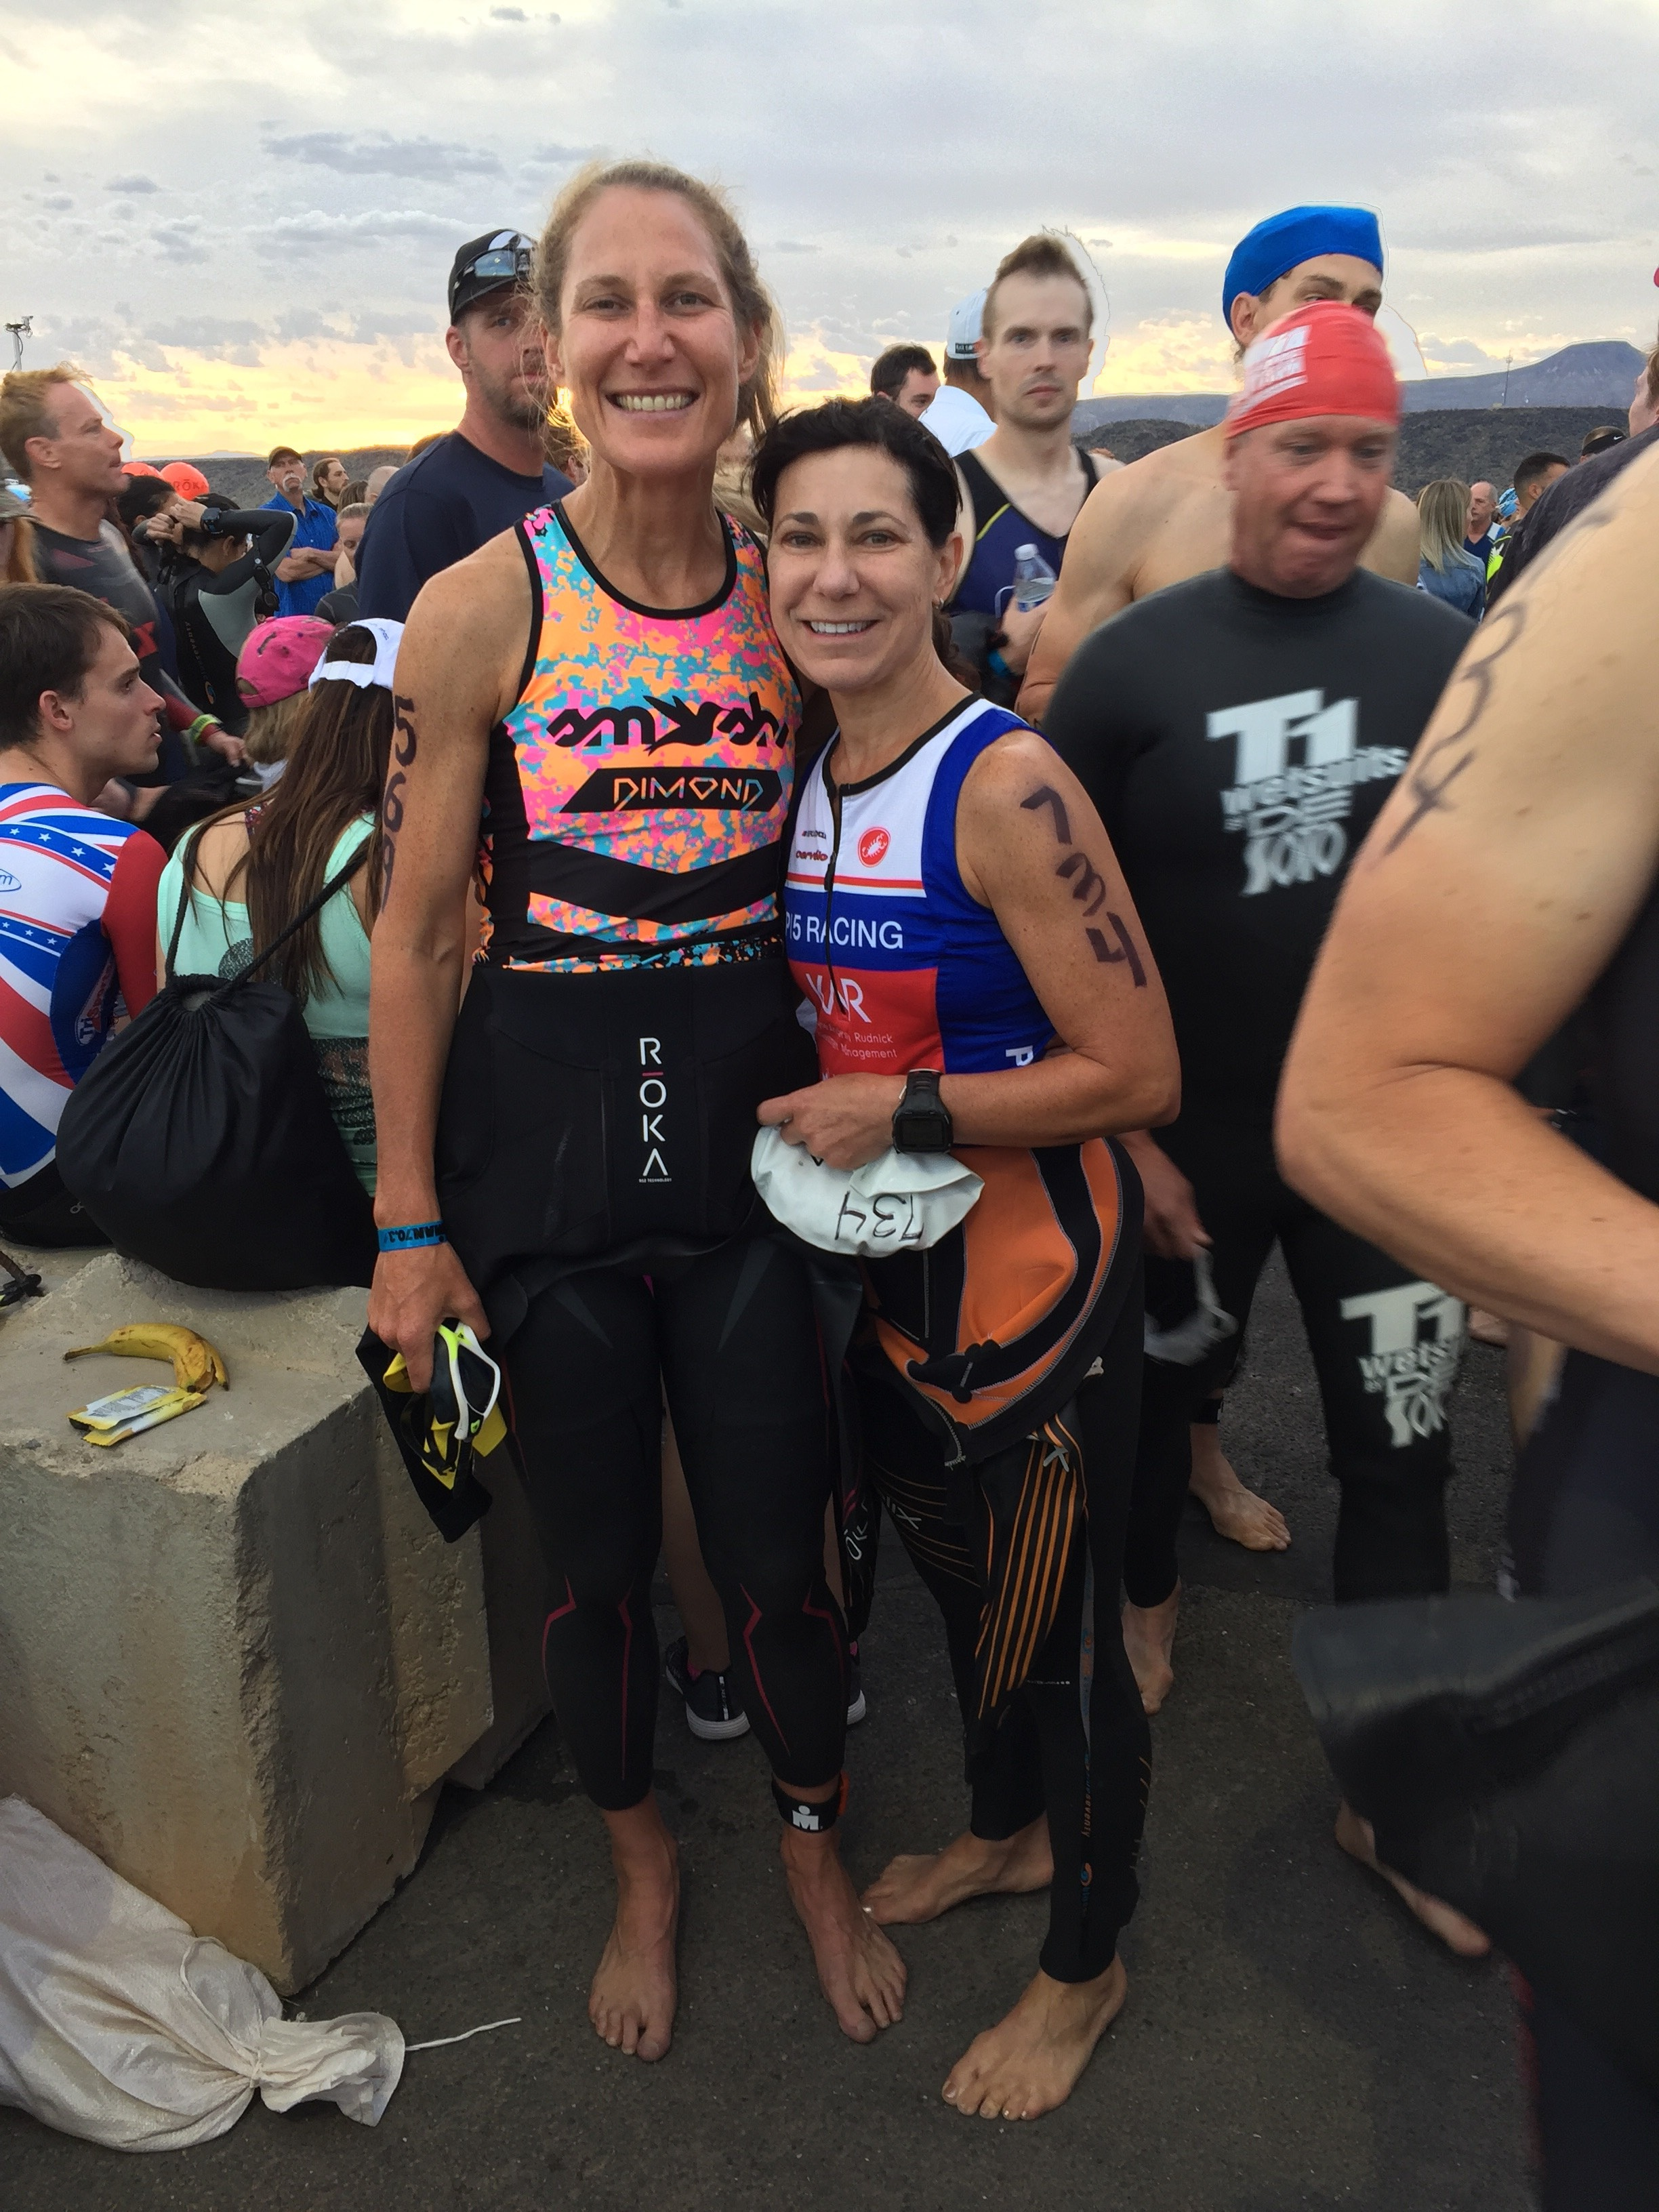 My friend Cathy and yours truly before the swim.